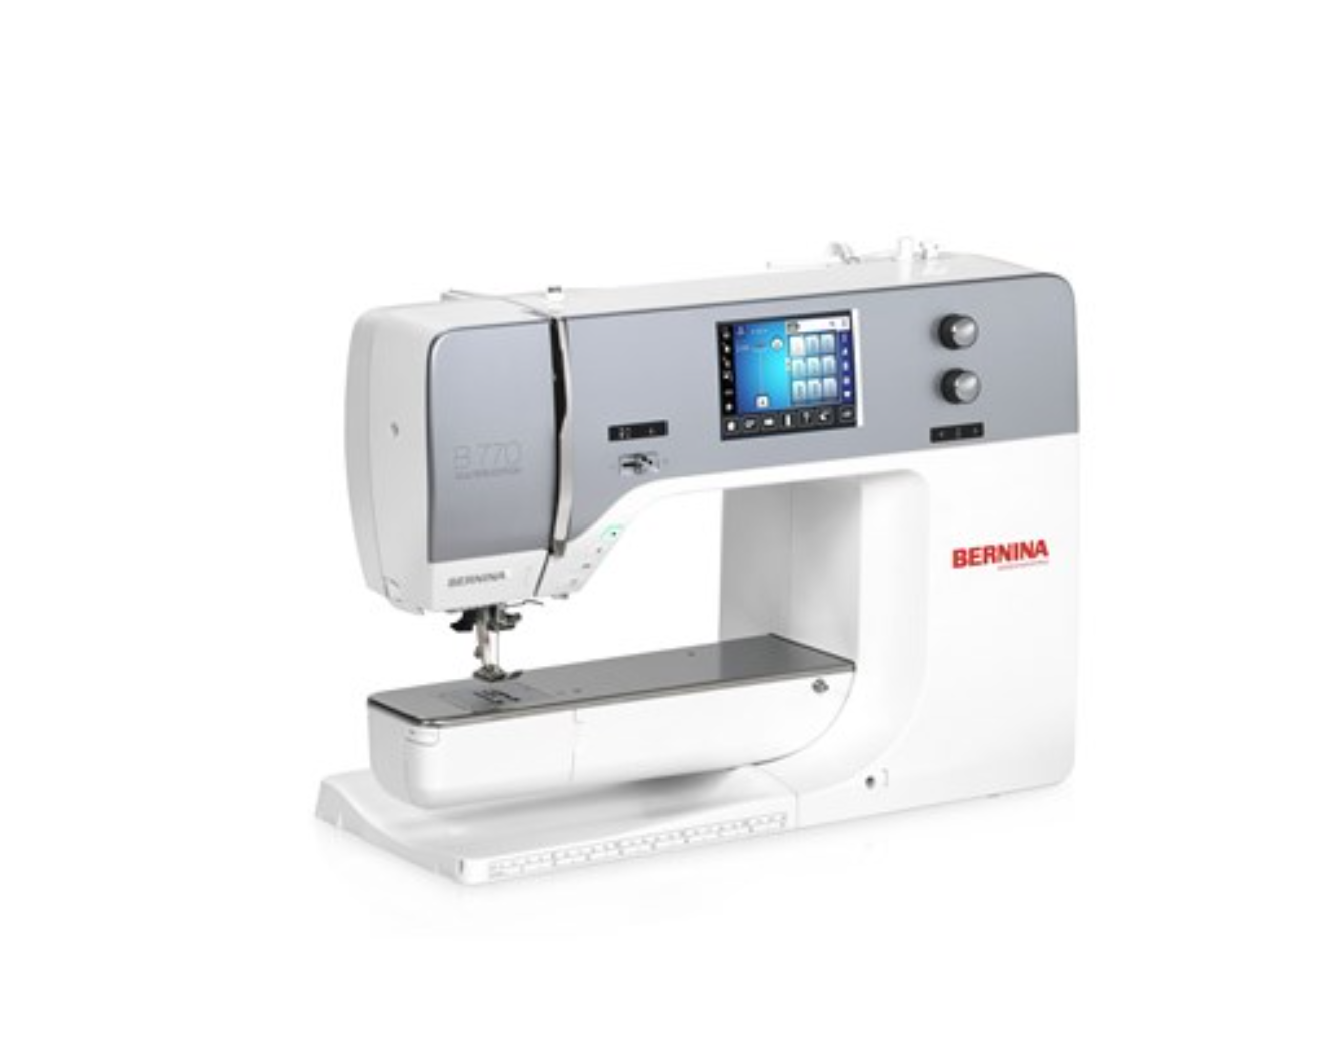 Bernina 770QE Sewing/Embroidery/Quilting